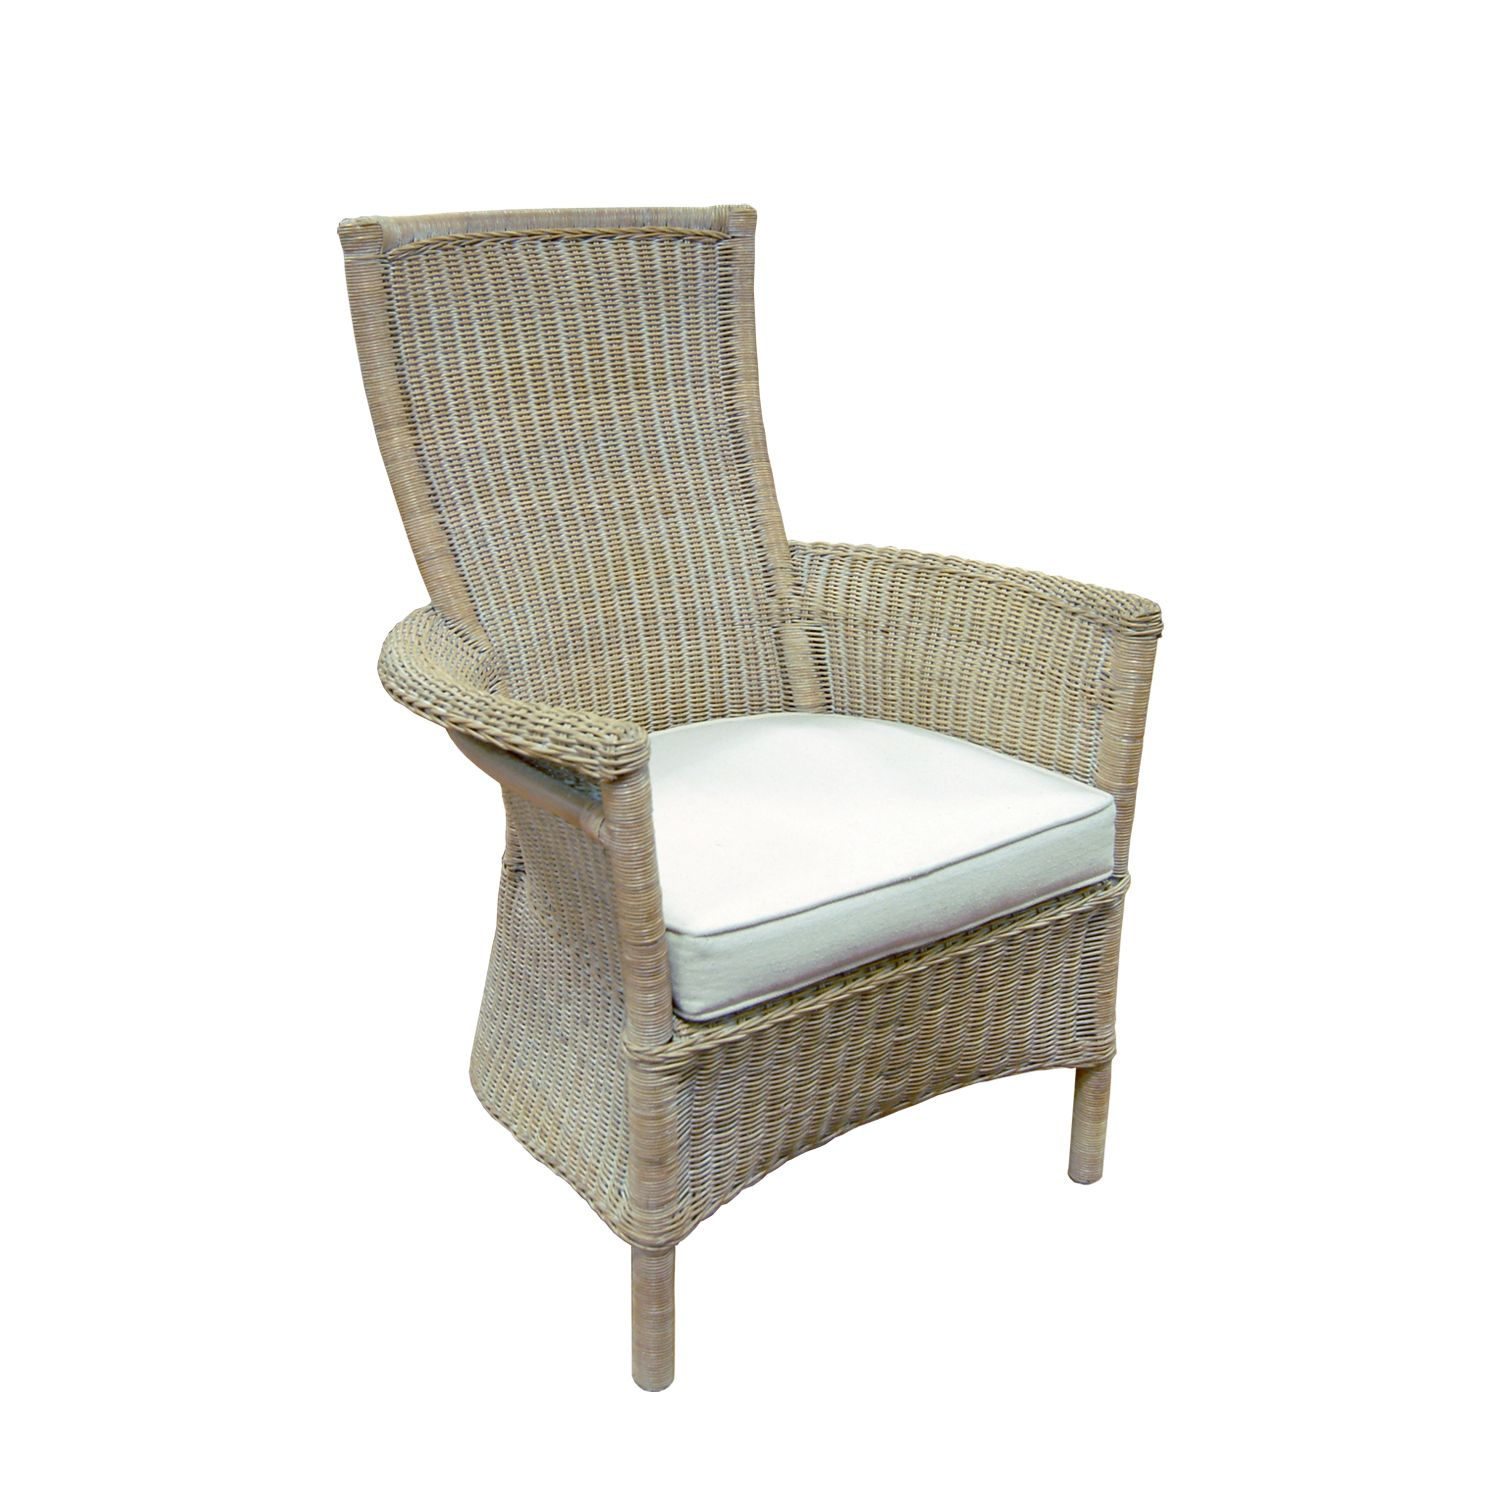 Small Wicker Sofa Most Ergonomic Sofas Chairs Vanessa Chair From Glasswells Ltd